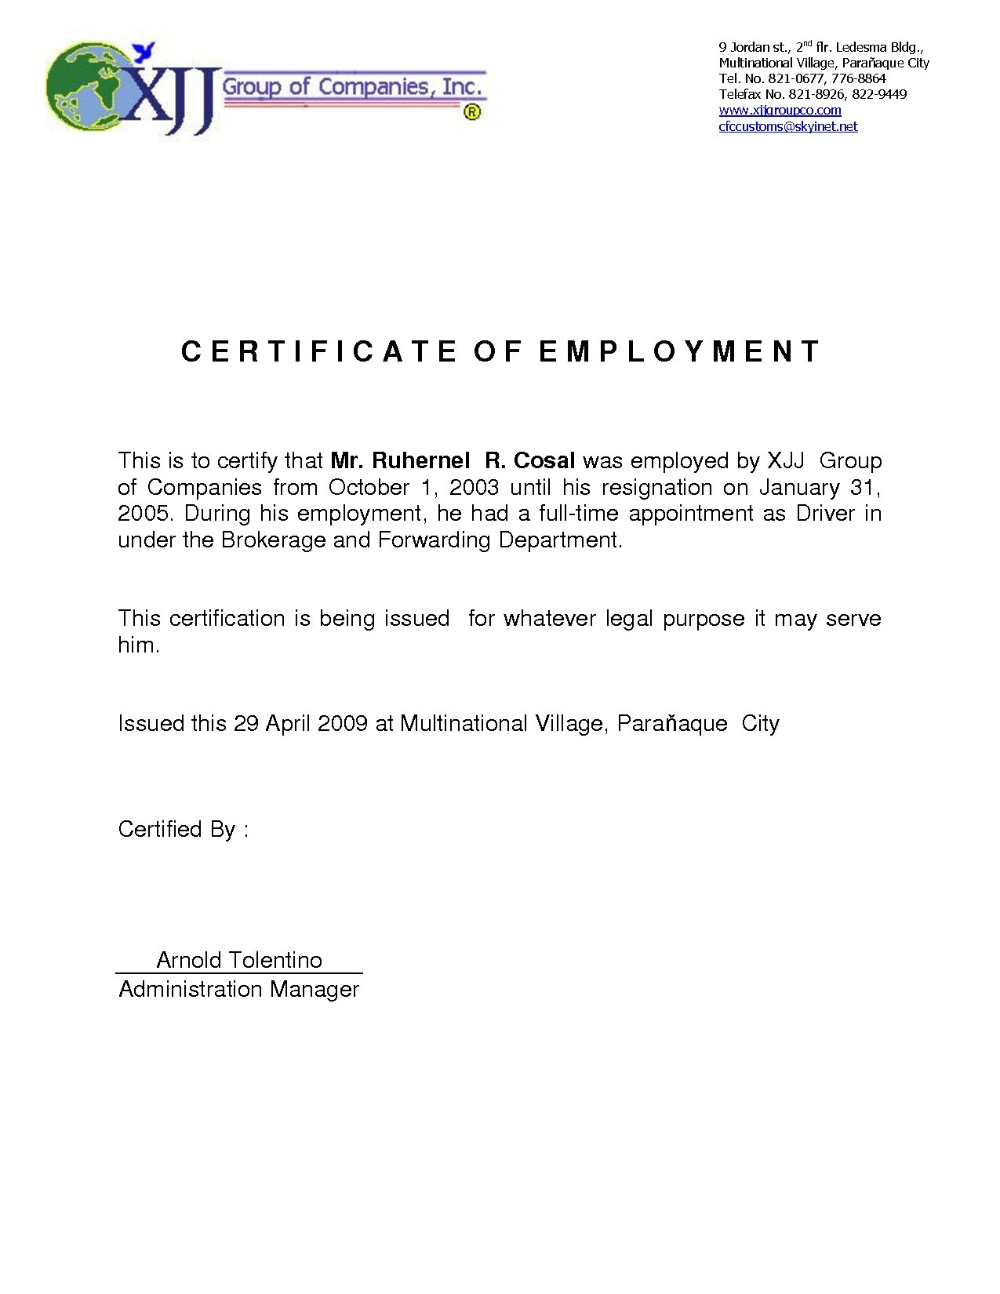 Certificate Employment Template Elsik Blue Cetane Regarding Sample Certi Employment Letter Sample Certificate Of Participation Template Certificate Templates